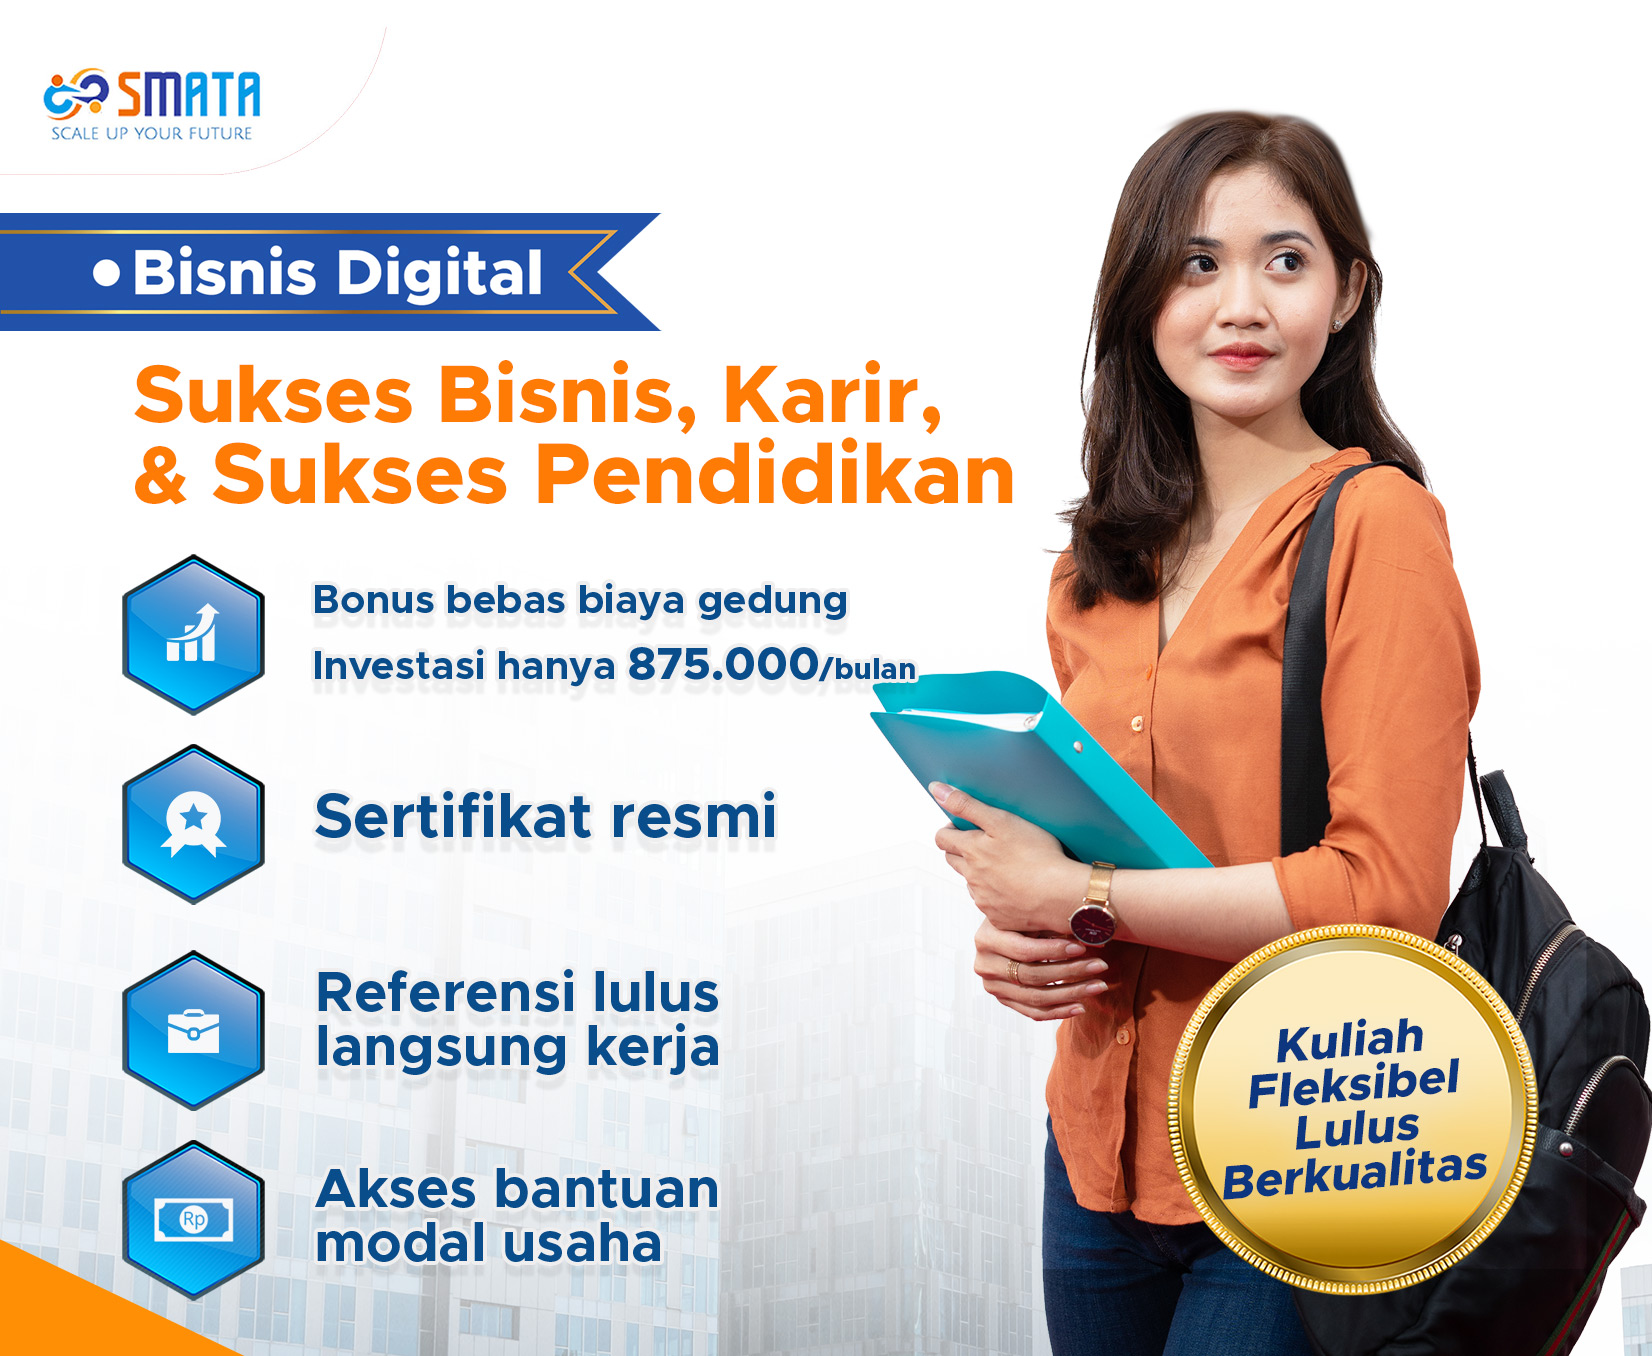 Smata Academy Kampus Digital Marketing and Sales